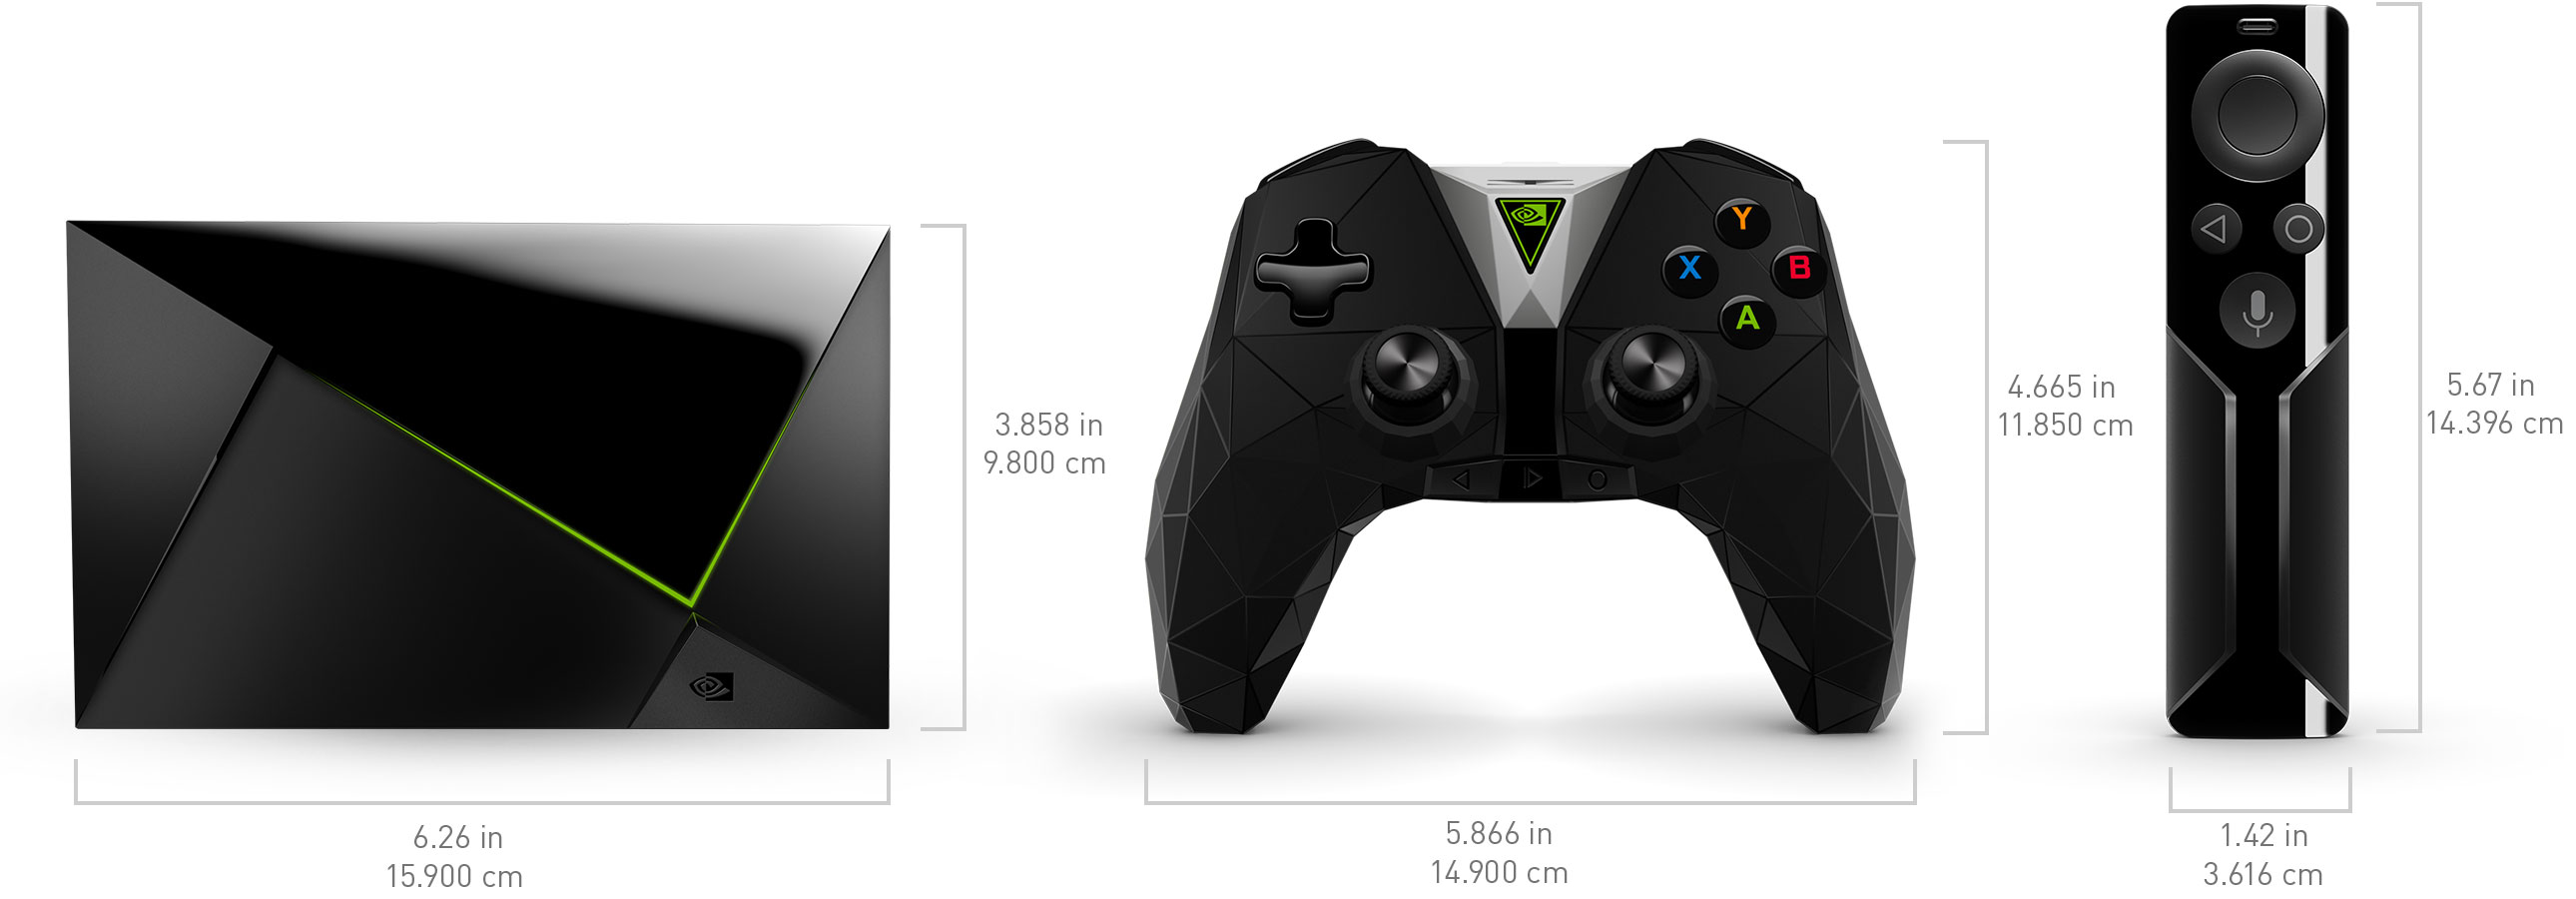 Specs & Features | NVIDIA SHIELD